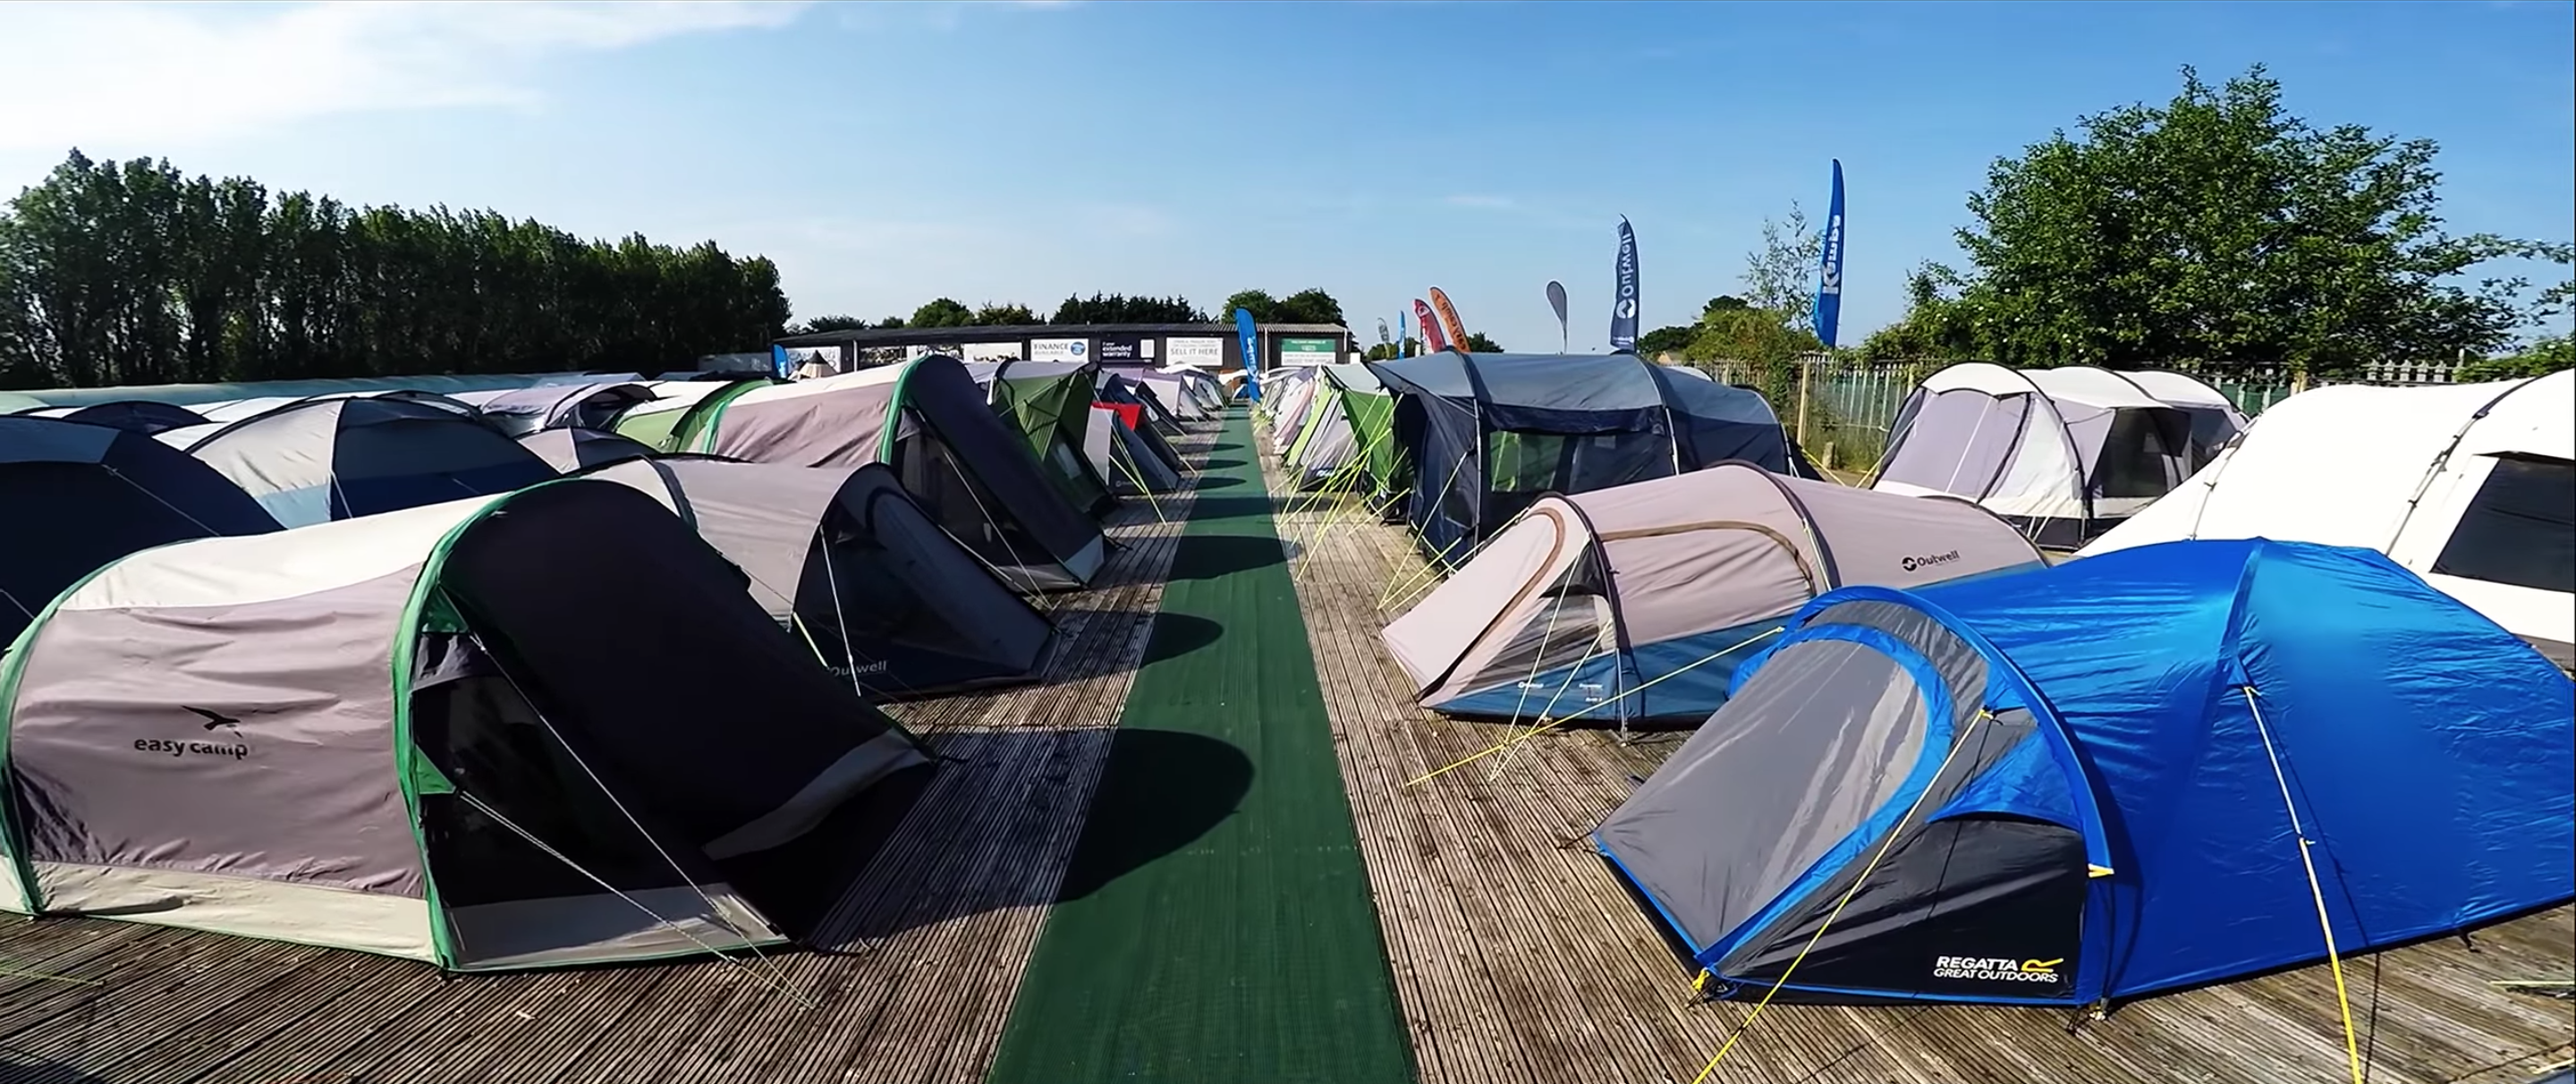 7eab52675c1b66 Camping World Shows offer the largest tent displays in the country. We  generally show anywhere from 90 to 160 tents at a time depending on which  store you ...